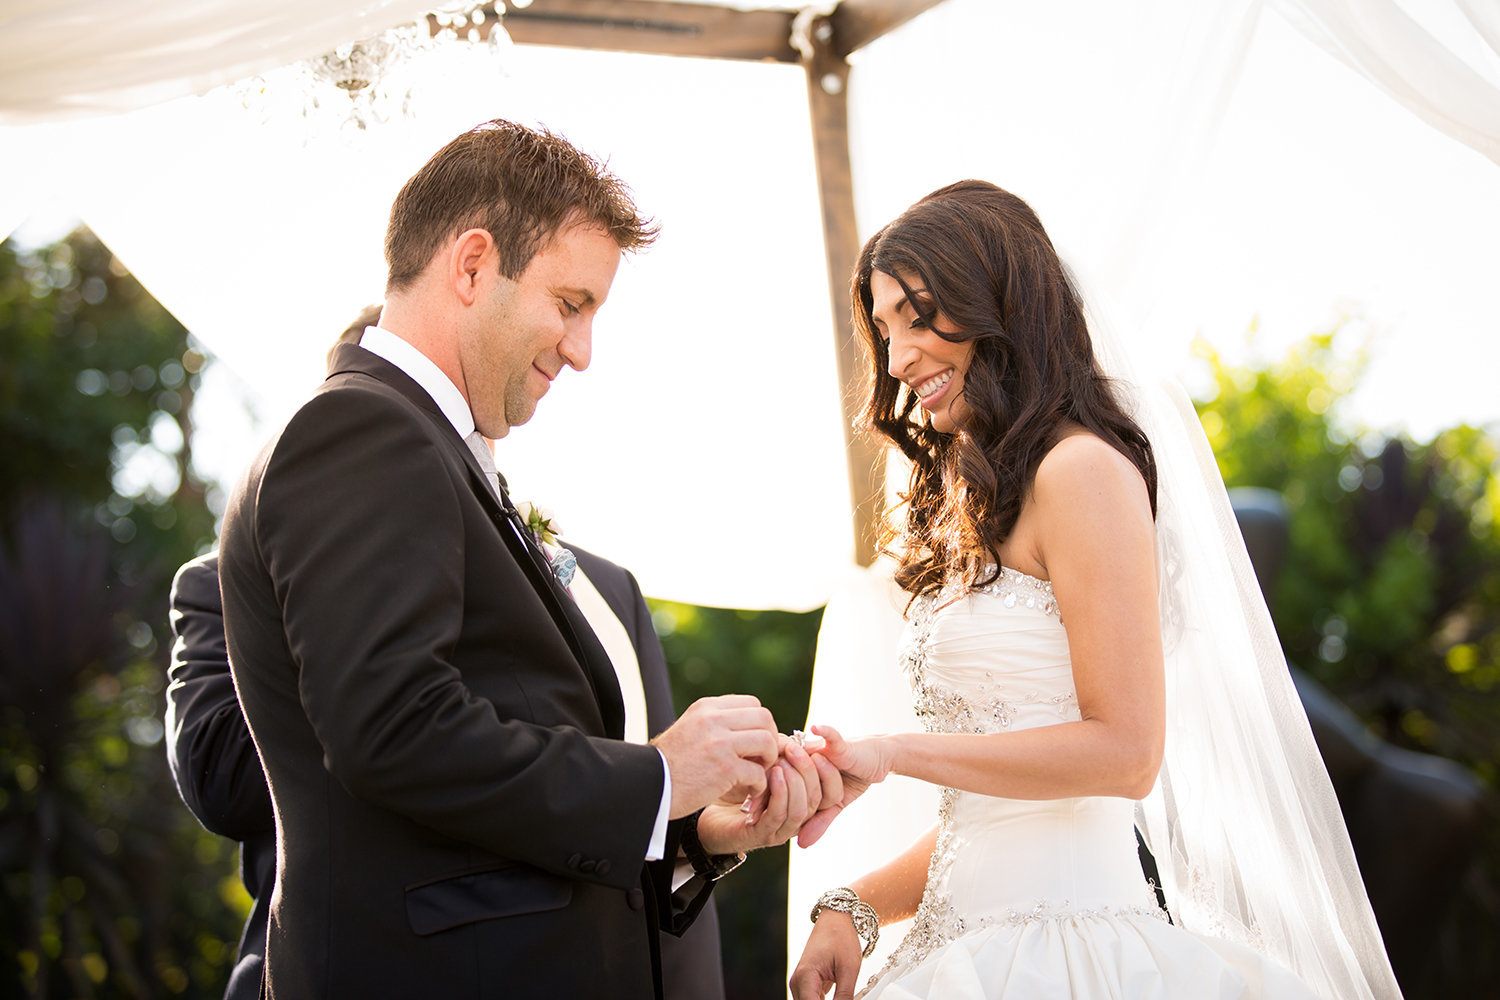 The ring exchange is best captured from closer to the bride and groom